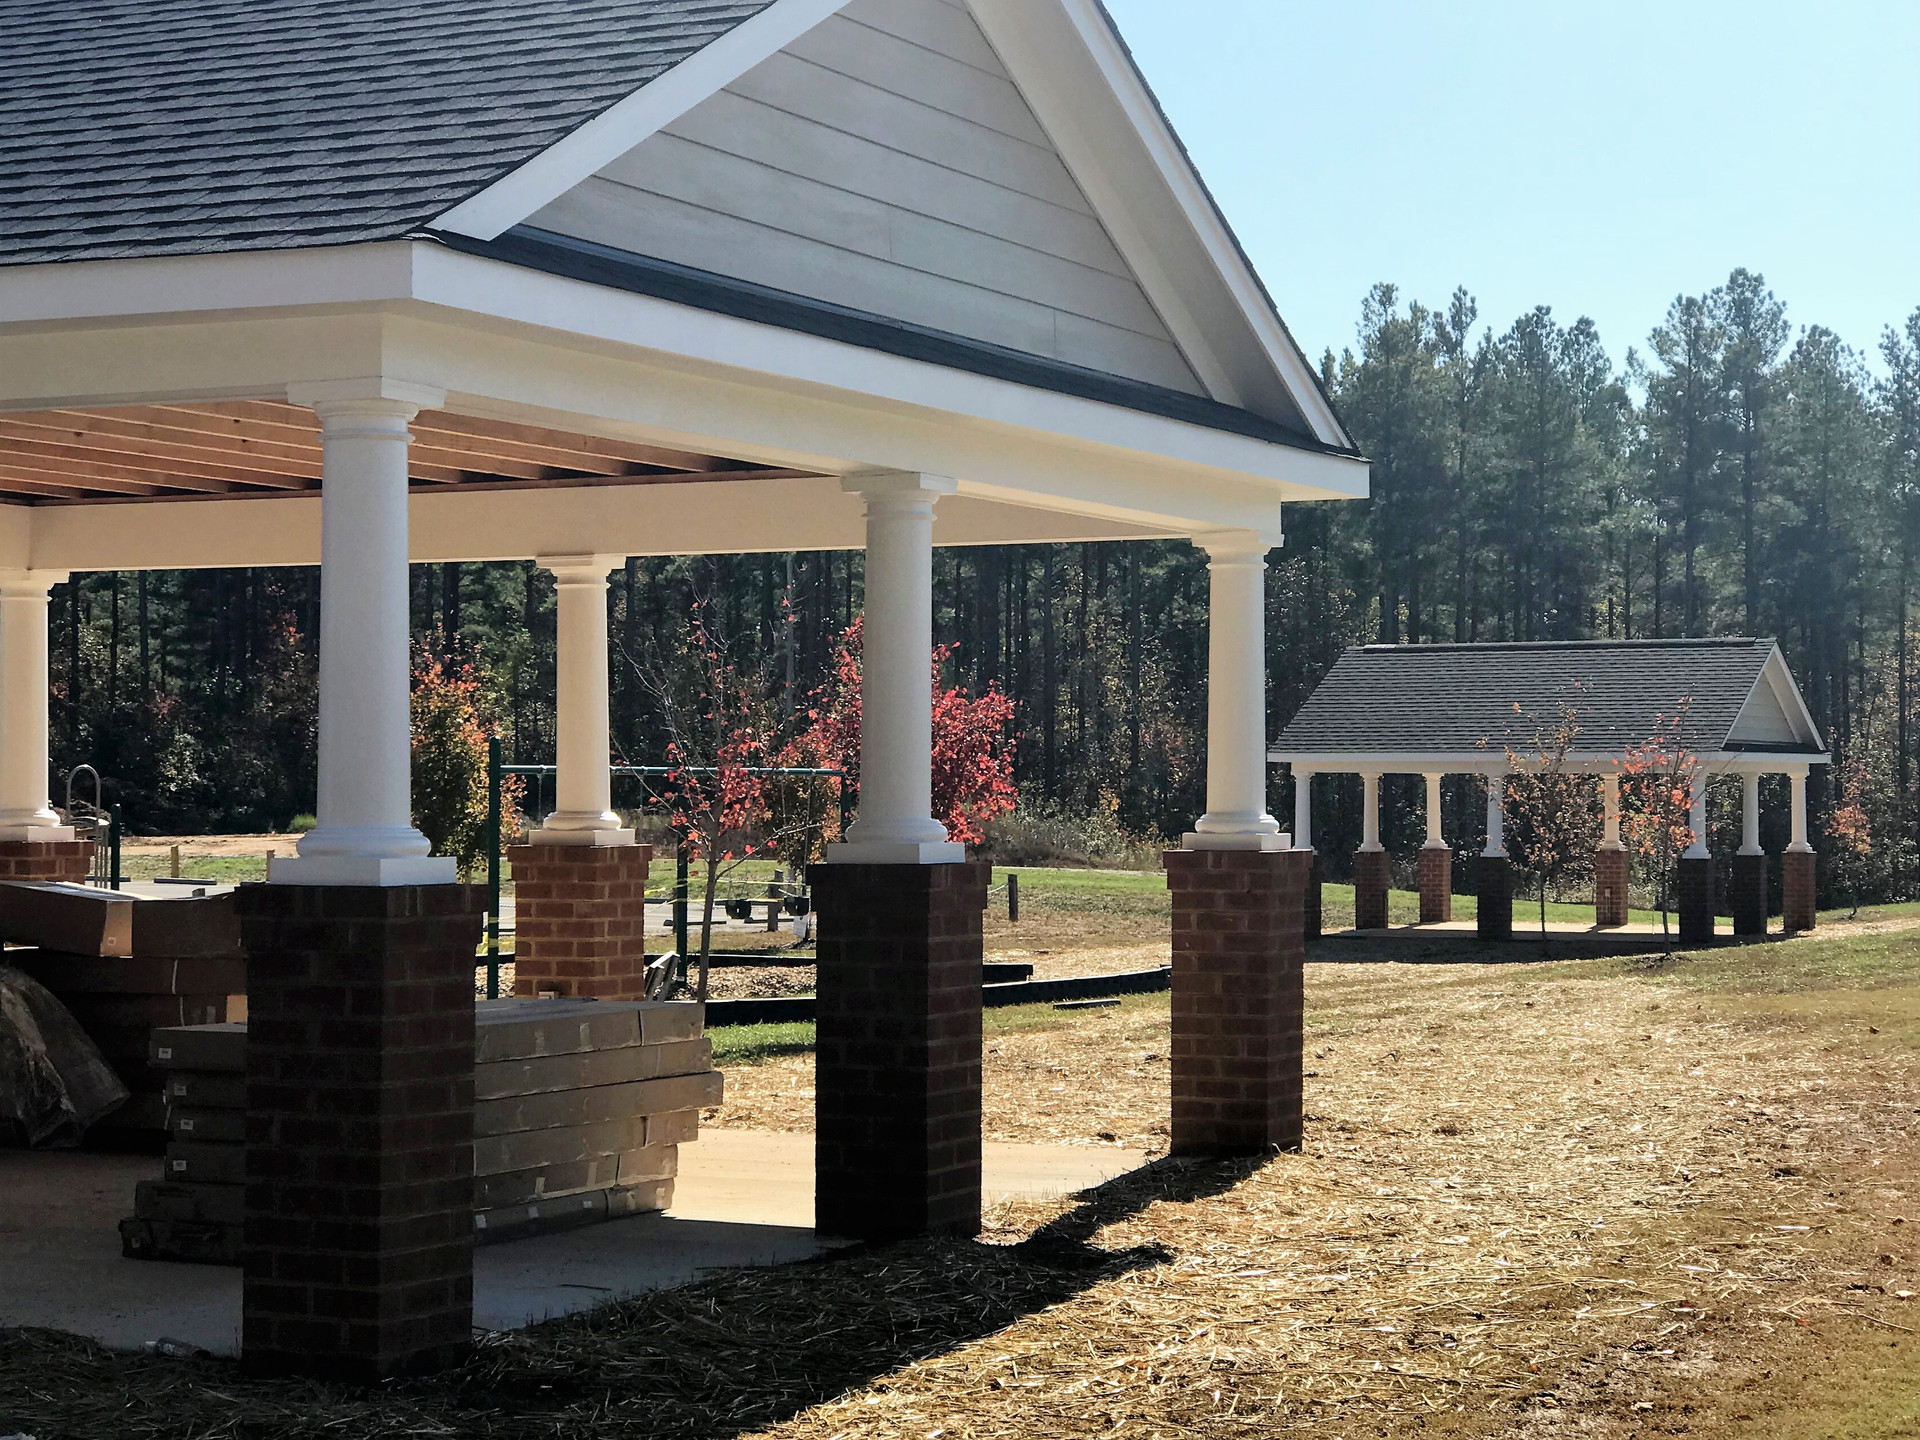 Picnic Shelters - Completed October 2017